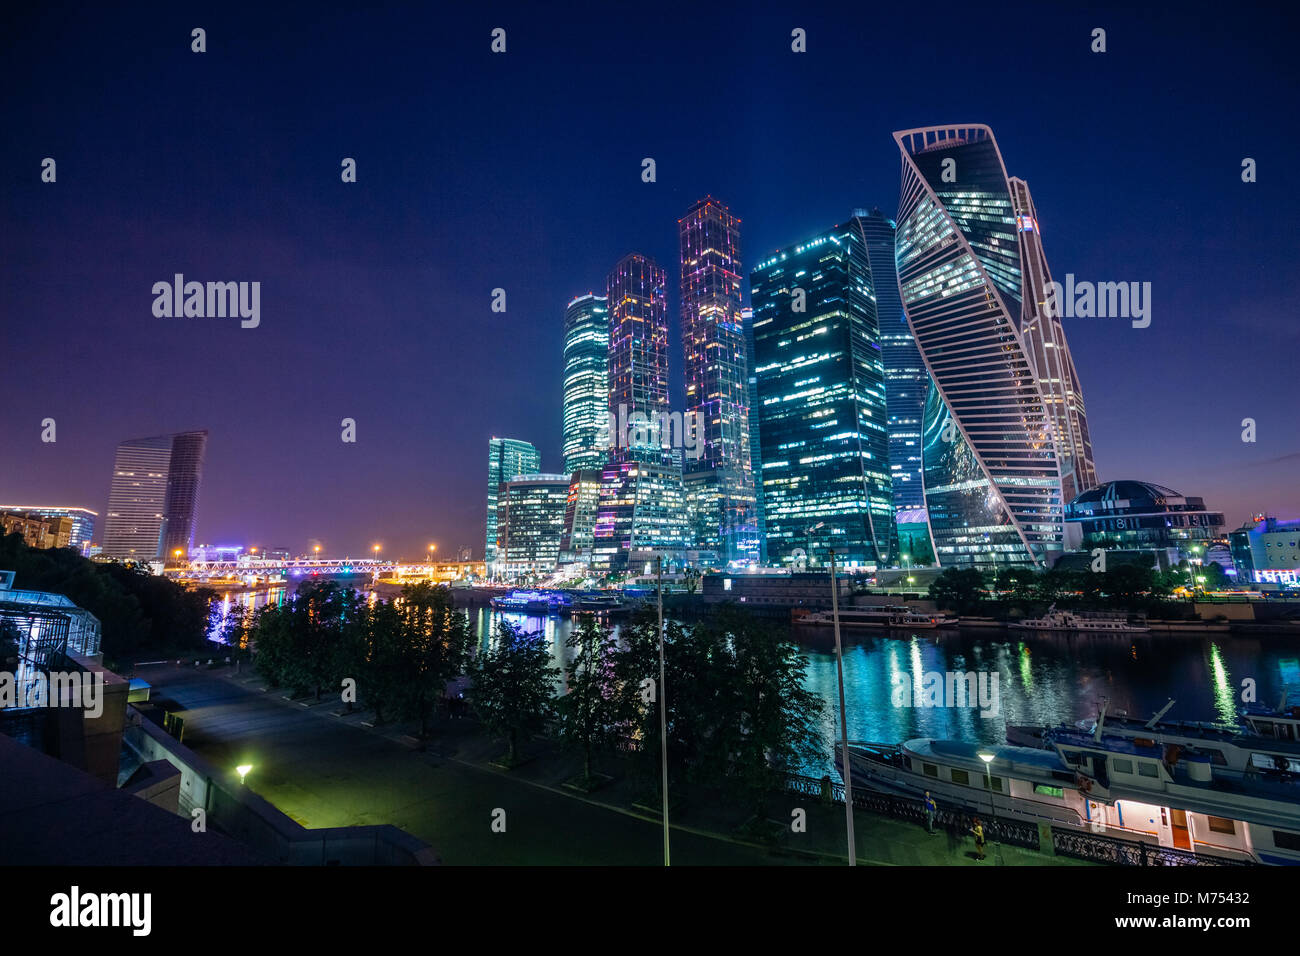 Cityscape with skyscrapers of Moscow City at night with beautiful illumination against the dark blue summer sky - Stock Image